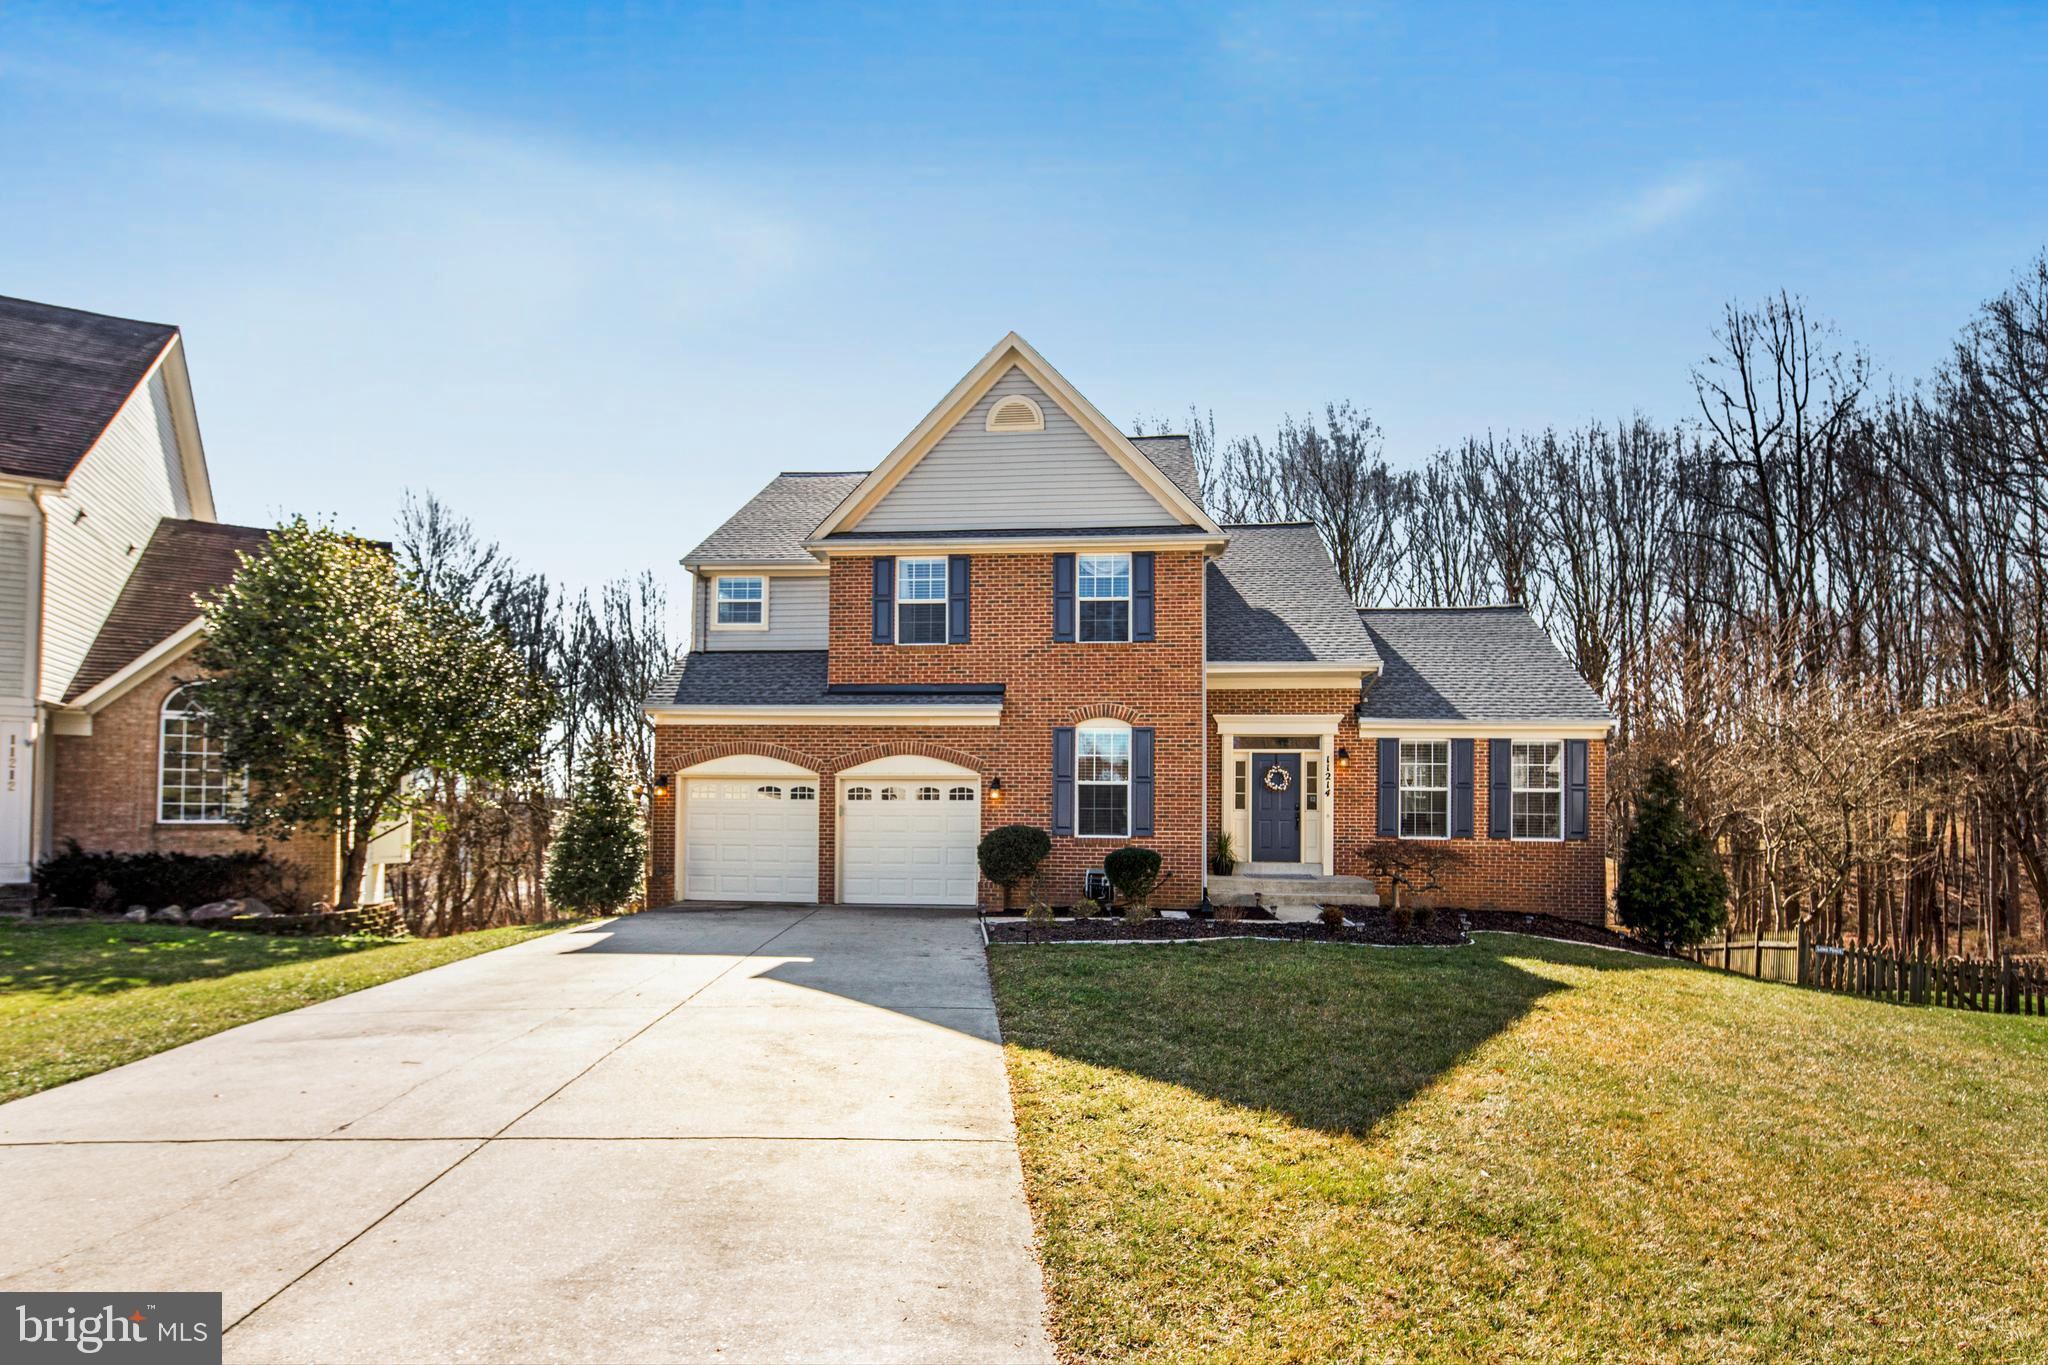 11214 KNOLLTOP VIEW COURT, GERMANTOWN, MD 20876